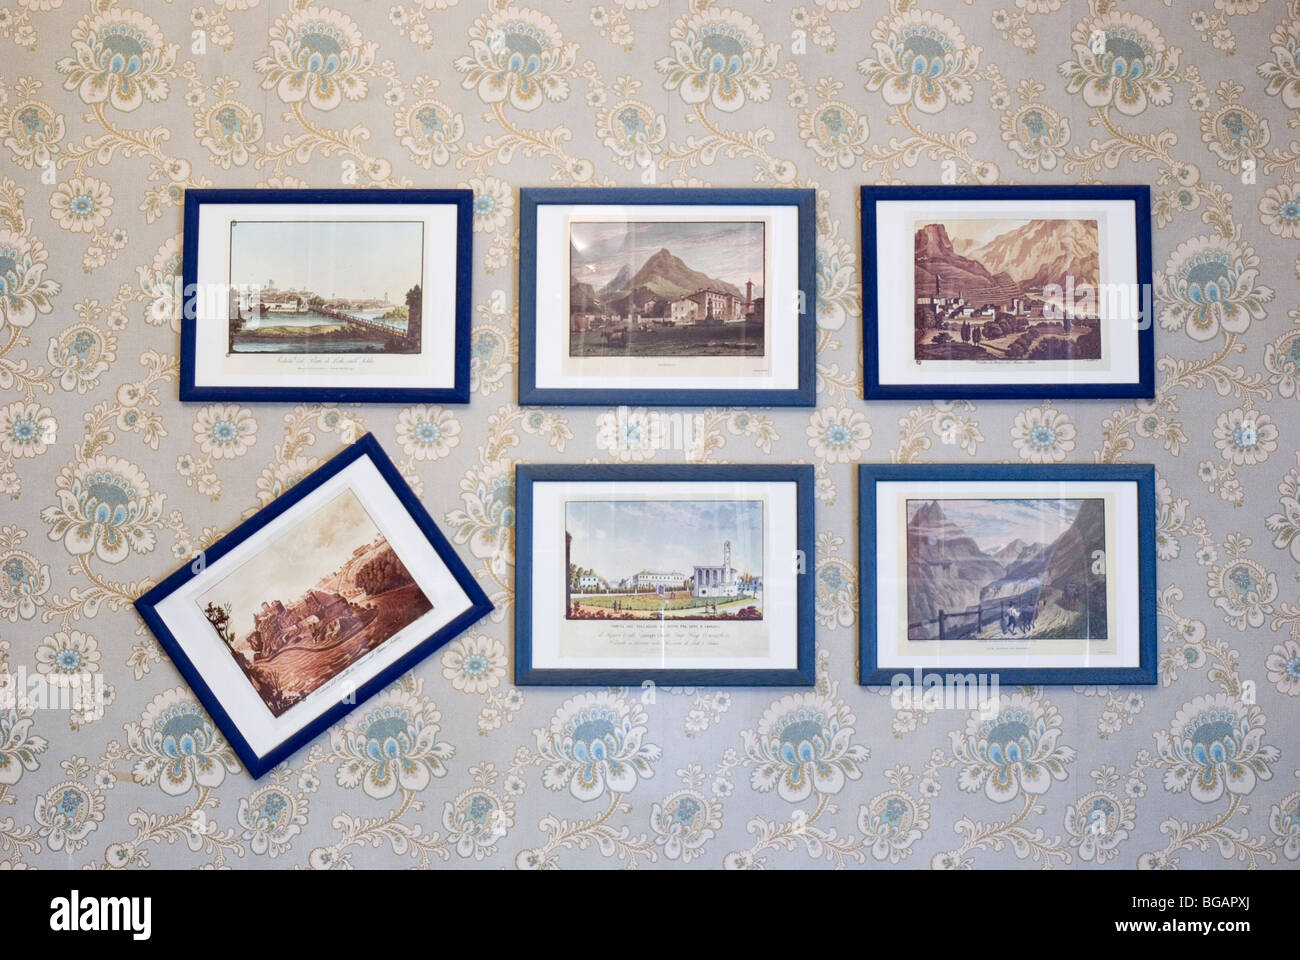 framed painting in a row hanged on wall - Stock Image